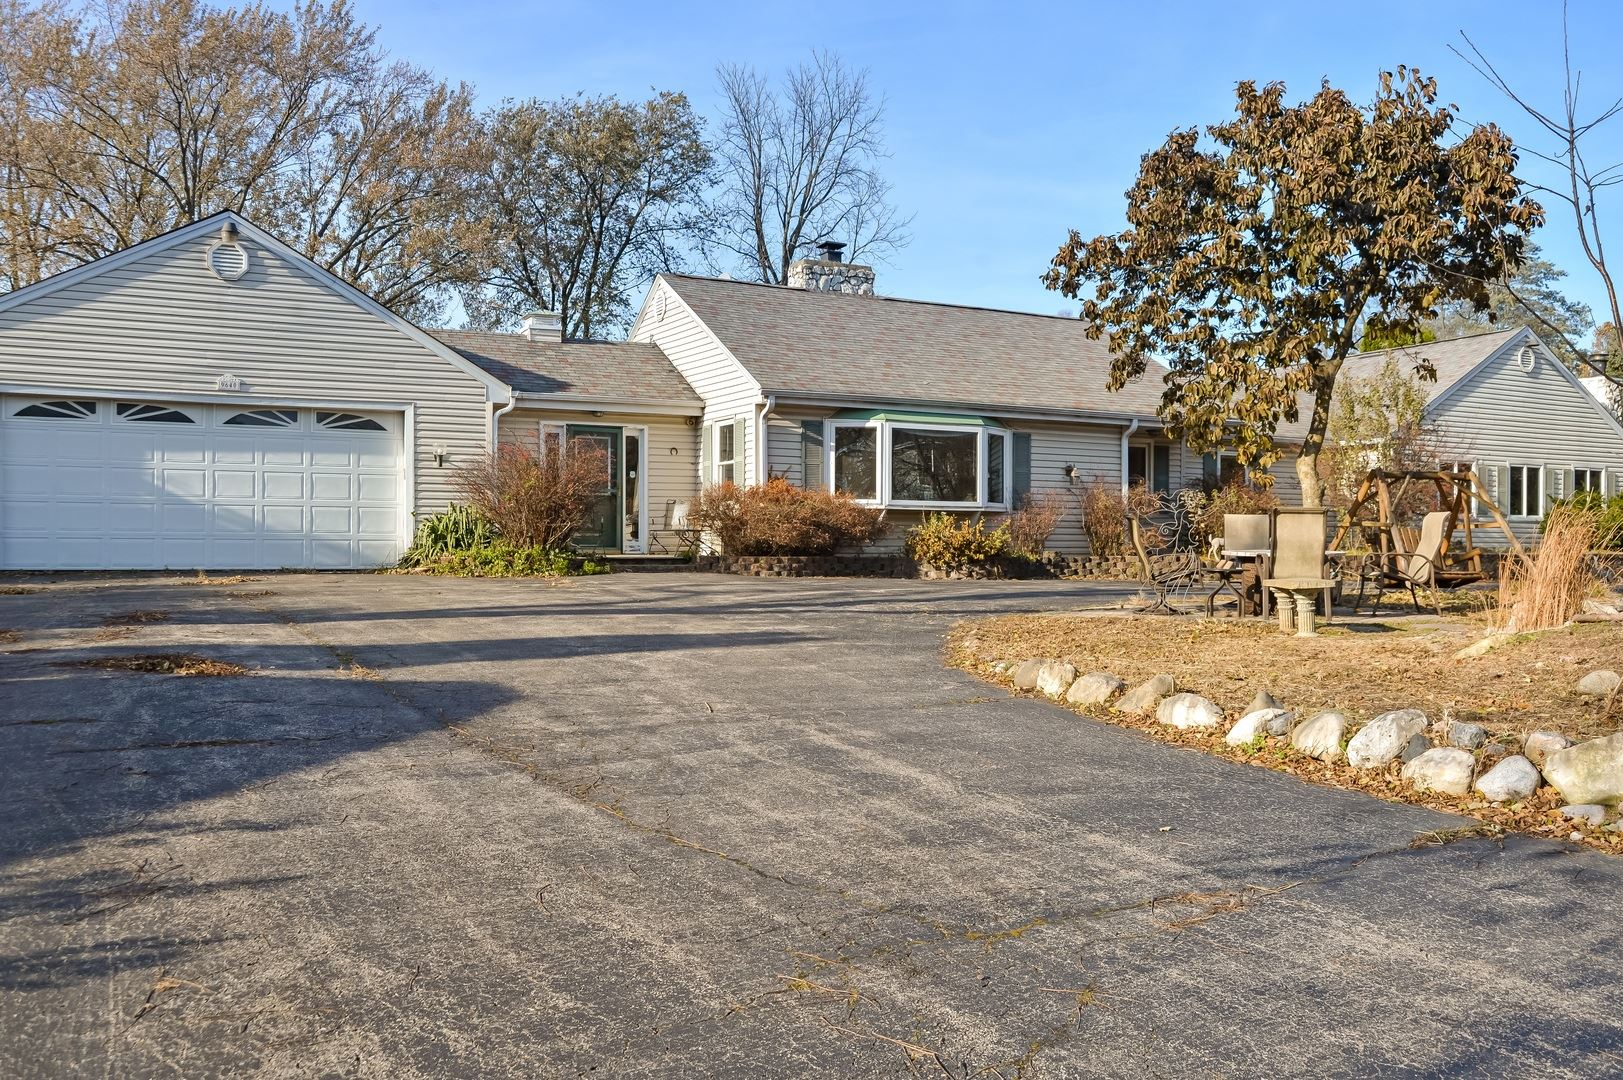 9N640 Merry Oaks Road, Streamwood, IL 60107 - #: 10725277